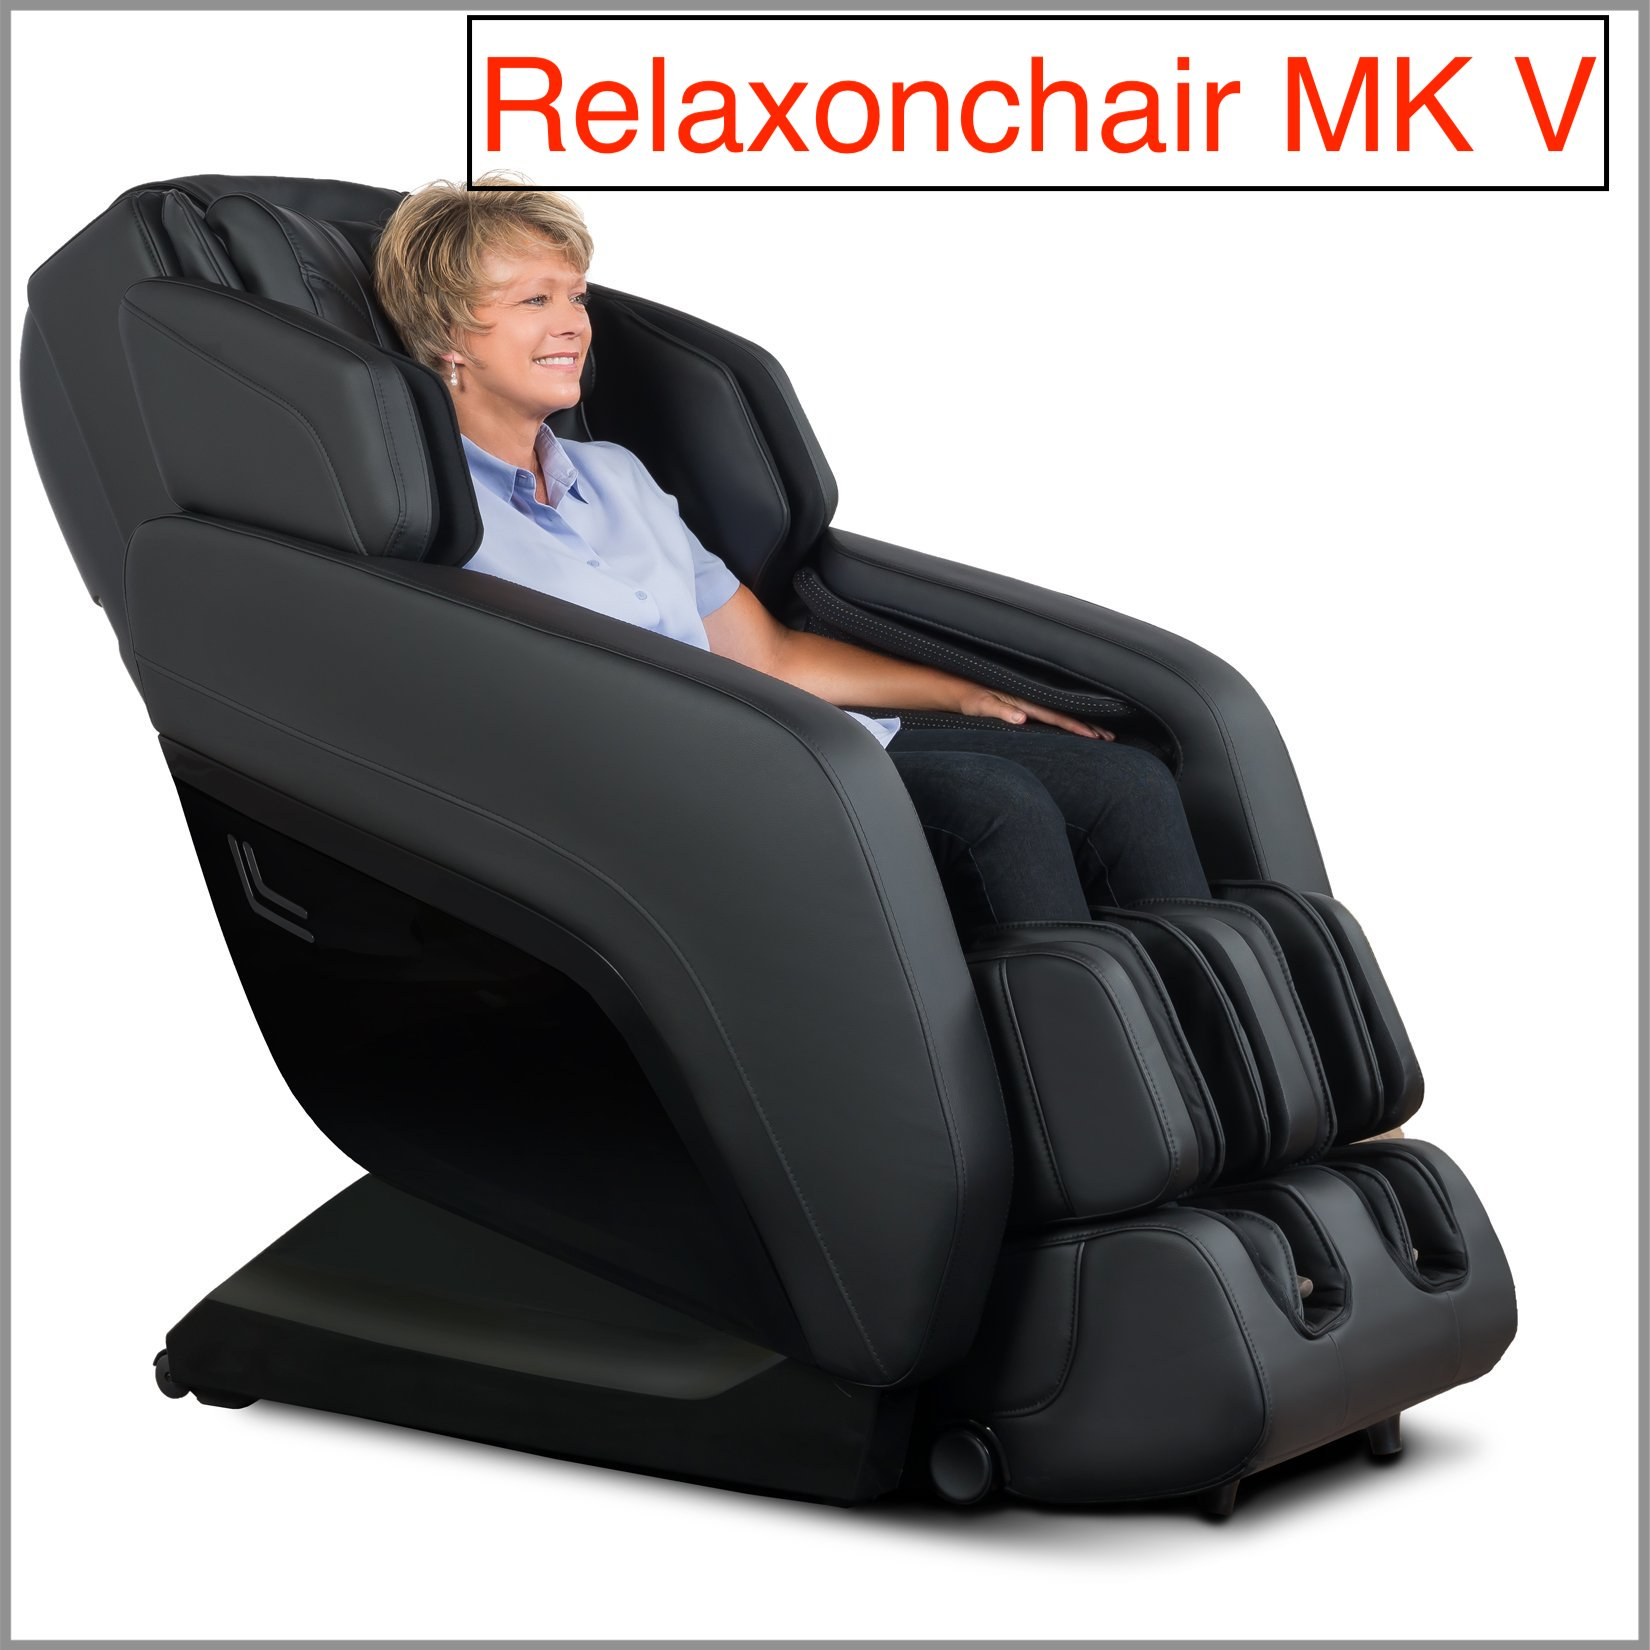 relaxonchair mk5 massage chair review